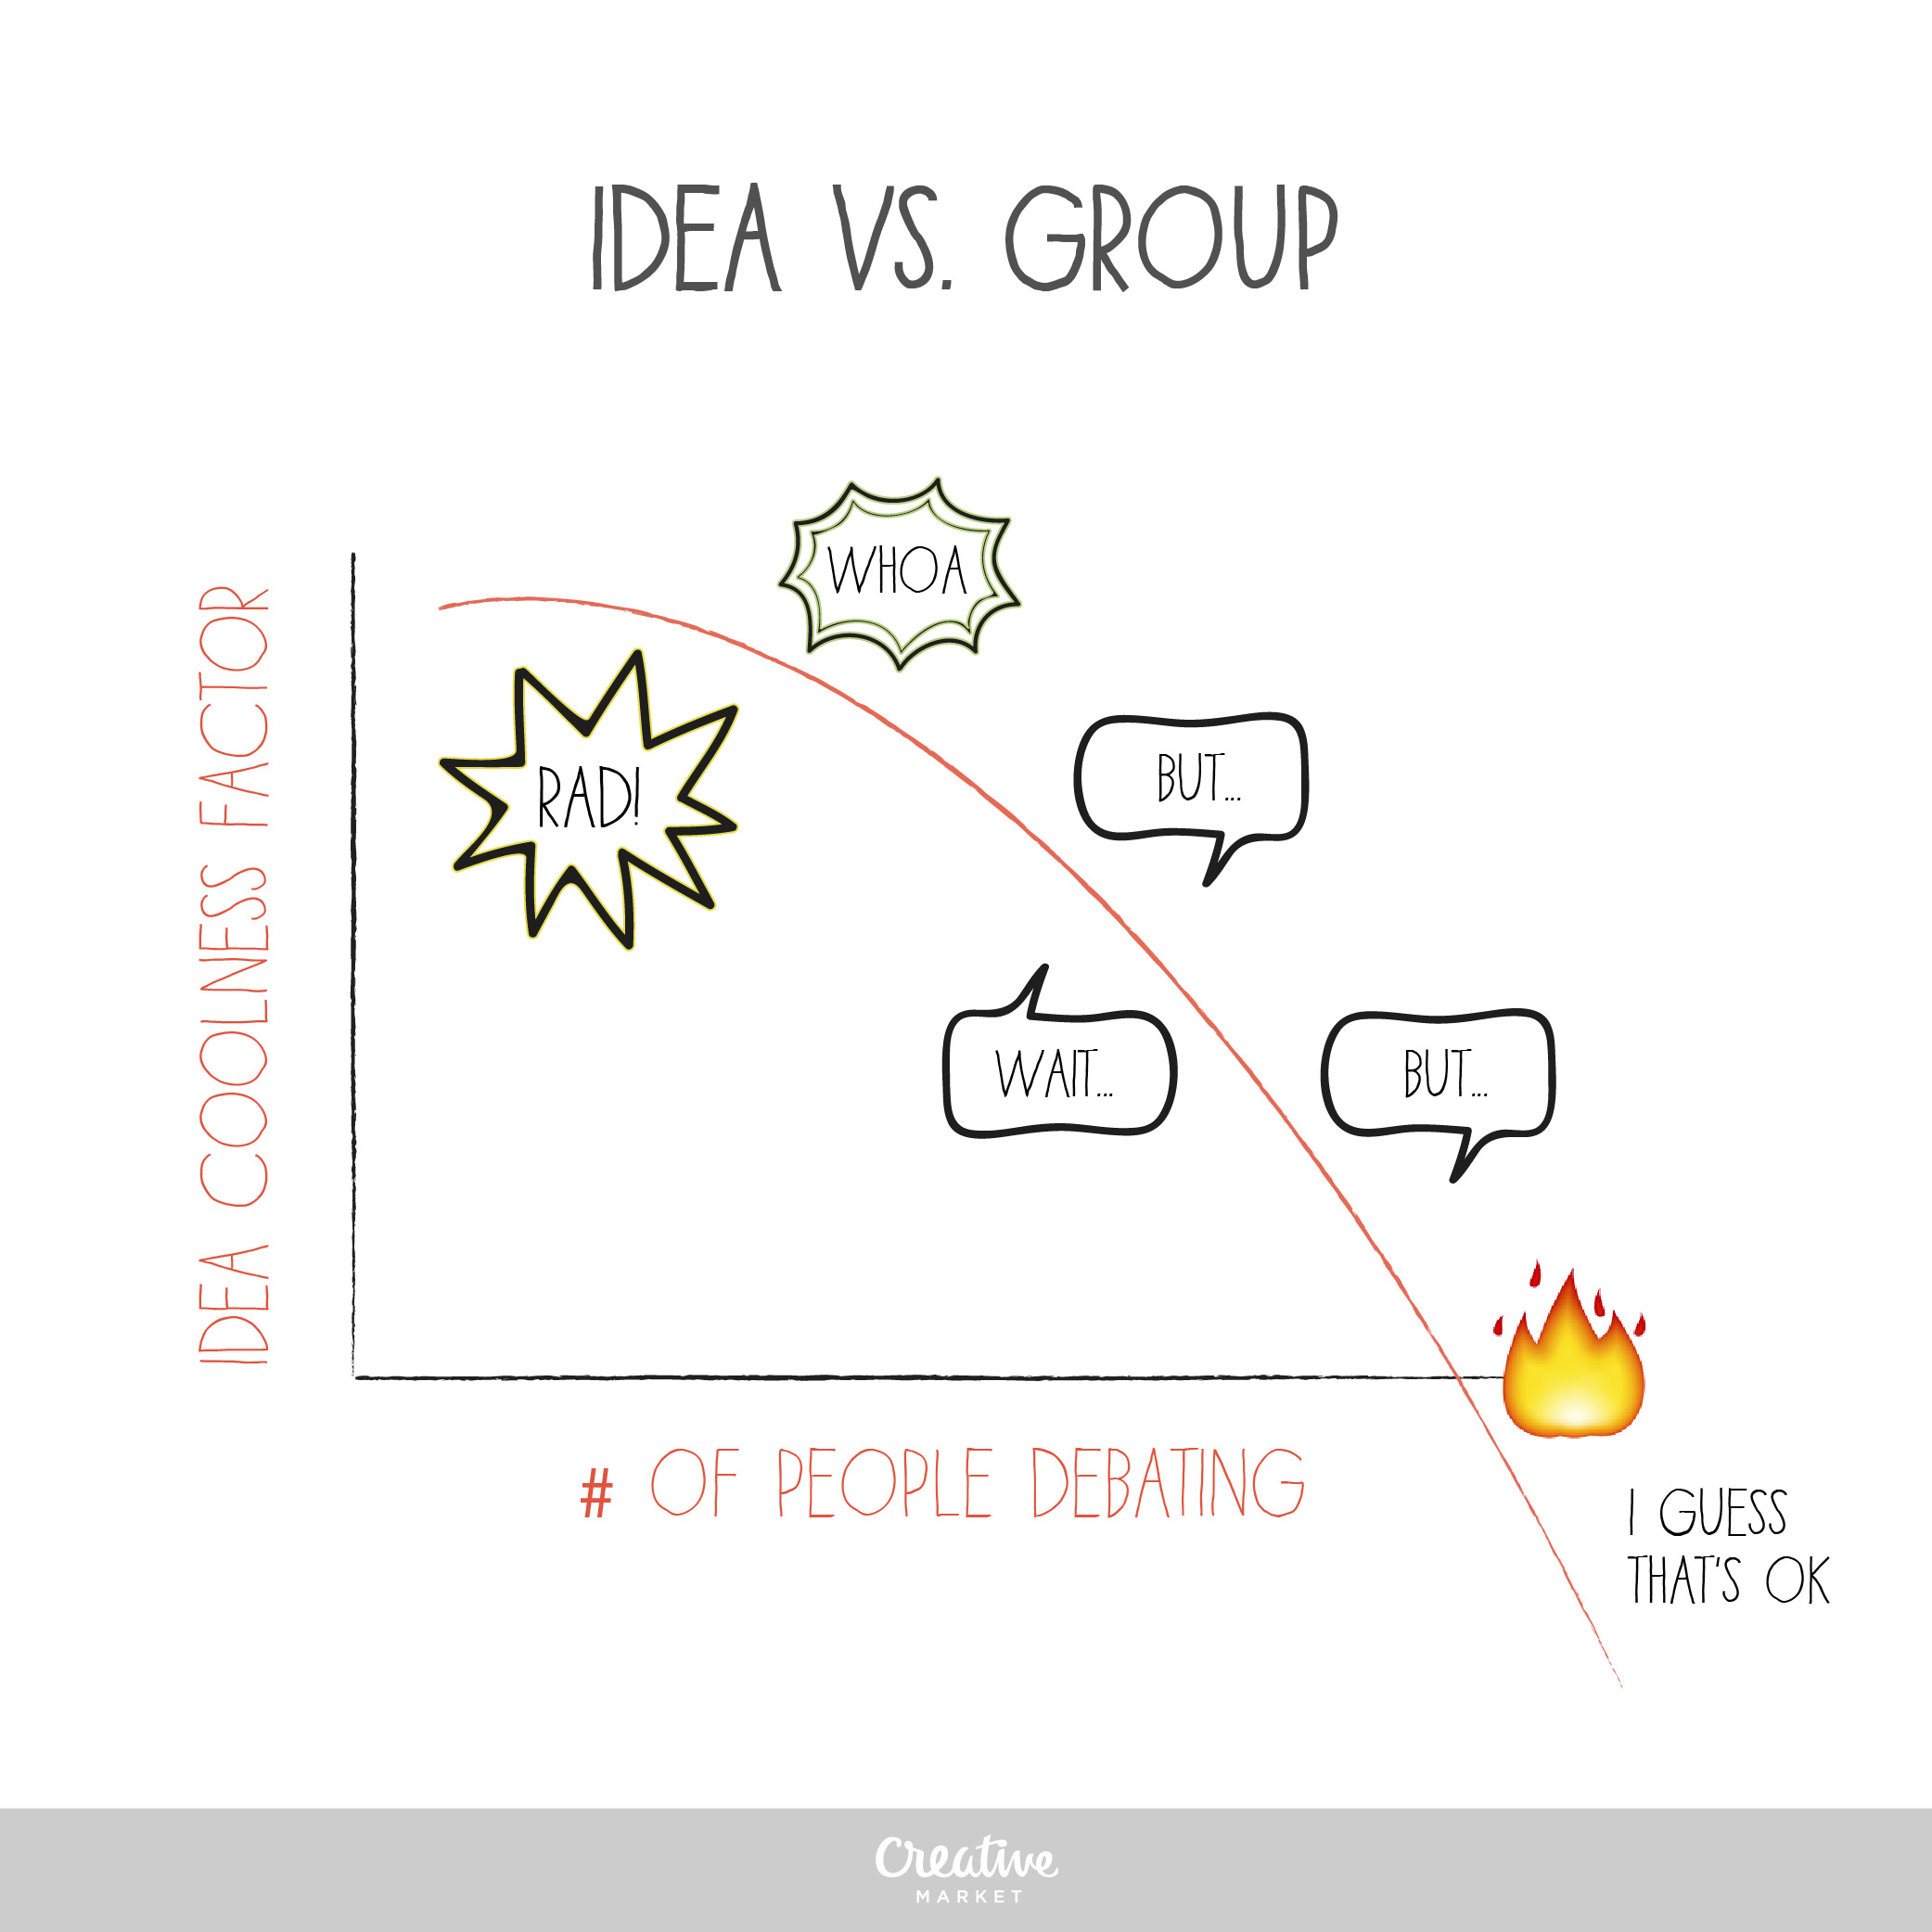 8 Reasons To Wipe Groupthink Off The Face Of The Earth Creative